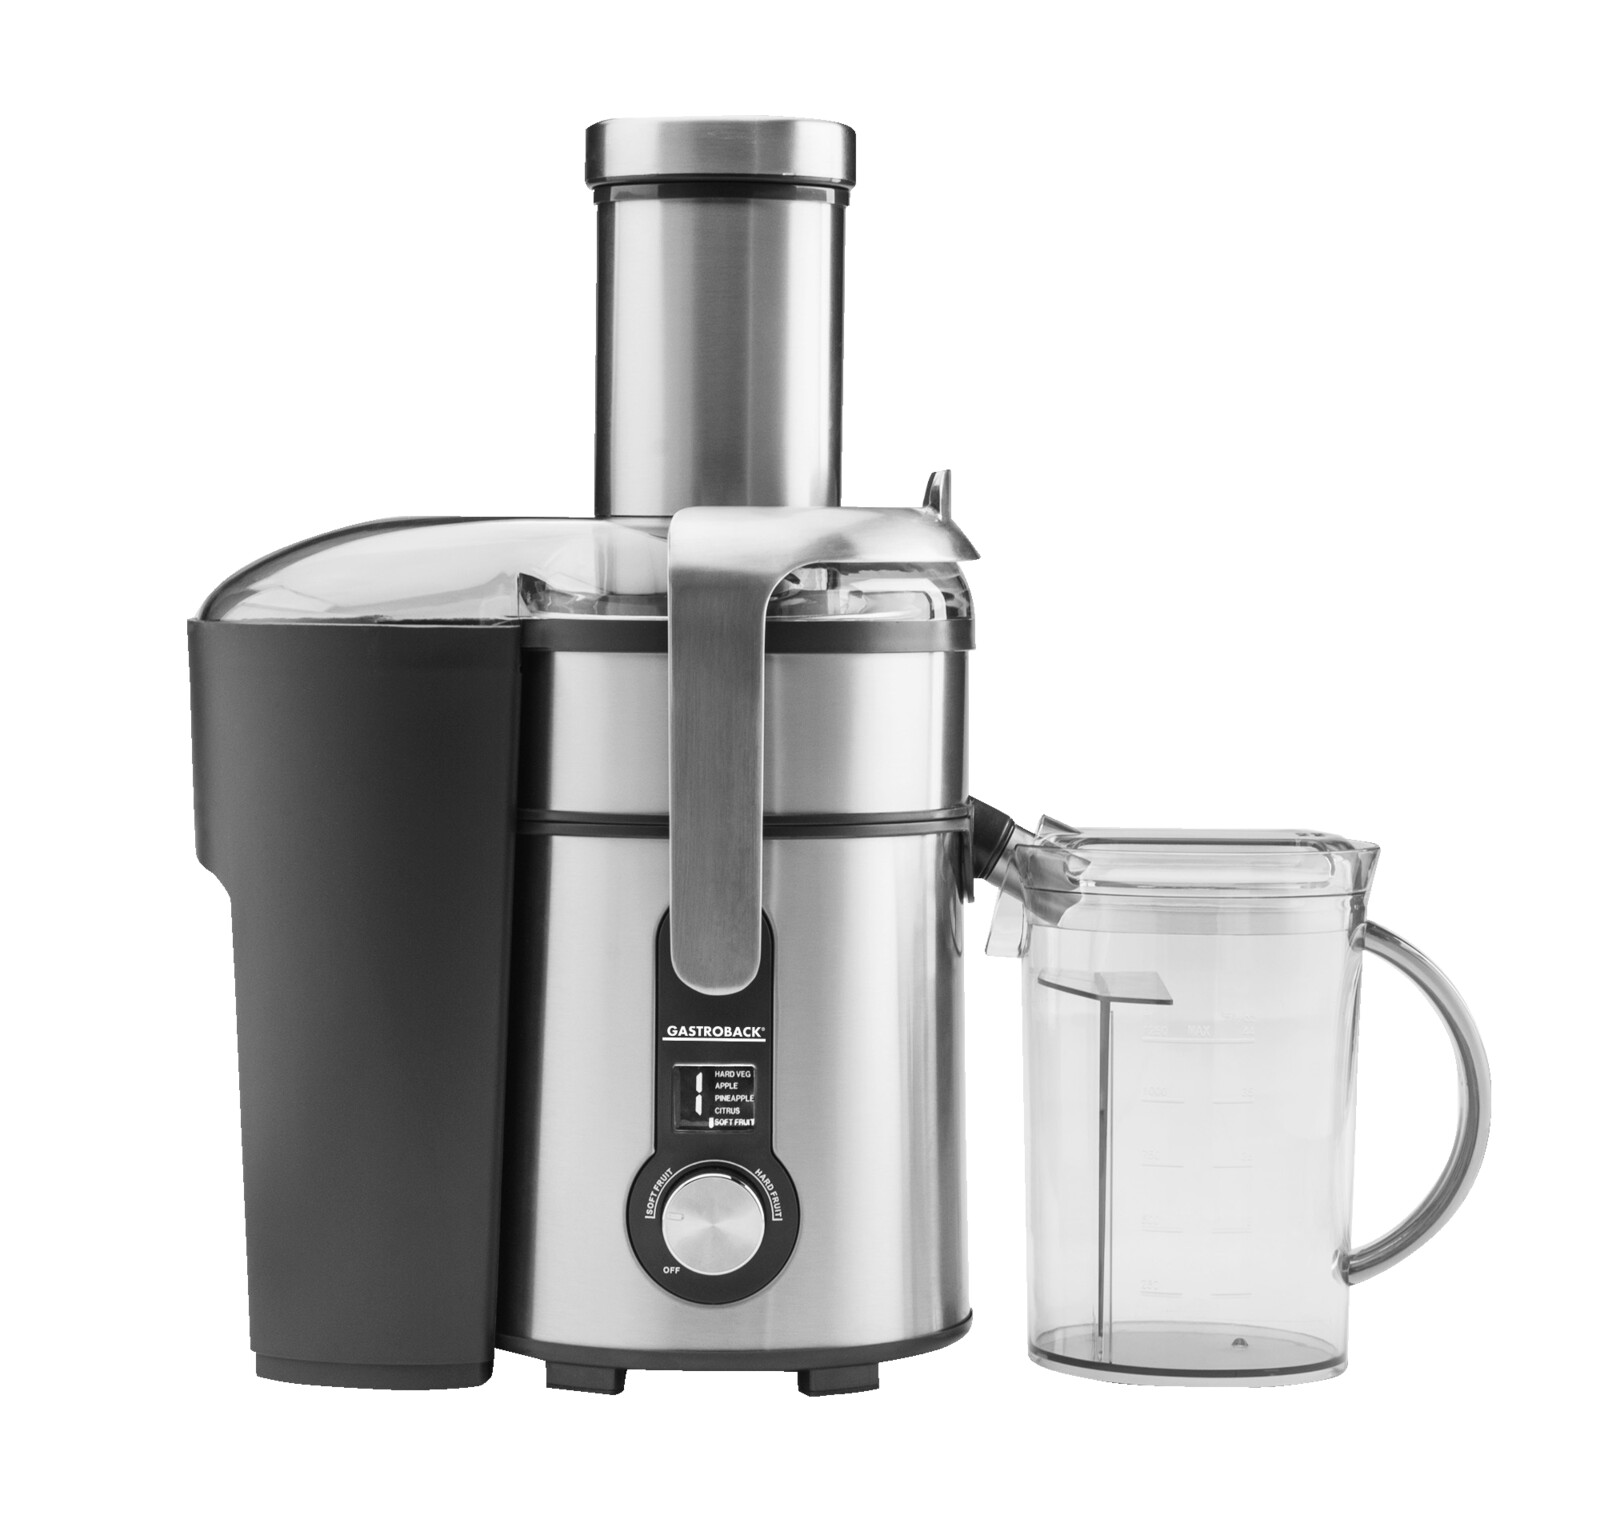 Gastroback 1300W Digital Multi Juicer Edestahl (40152